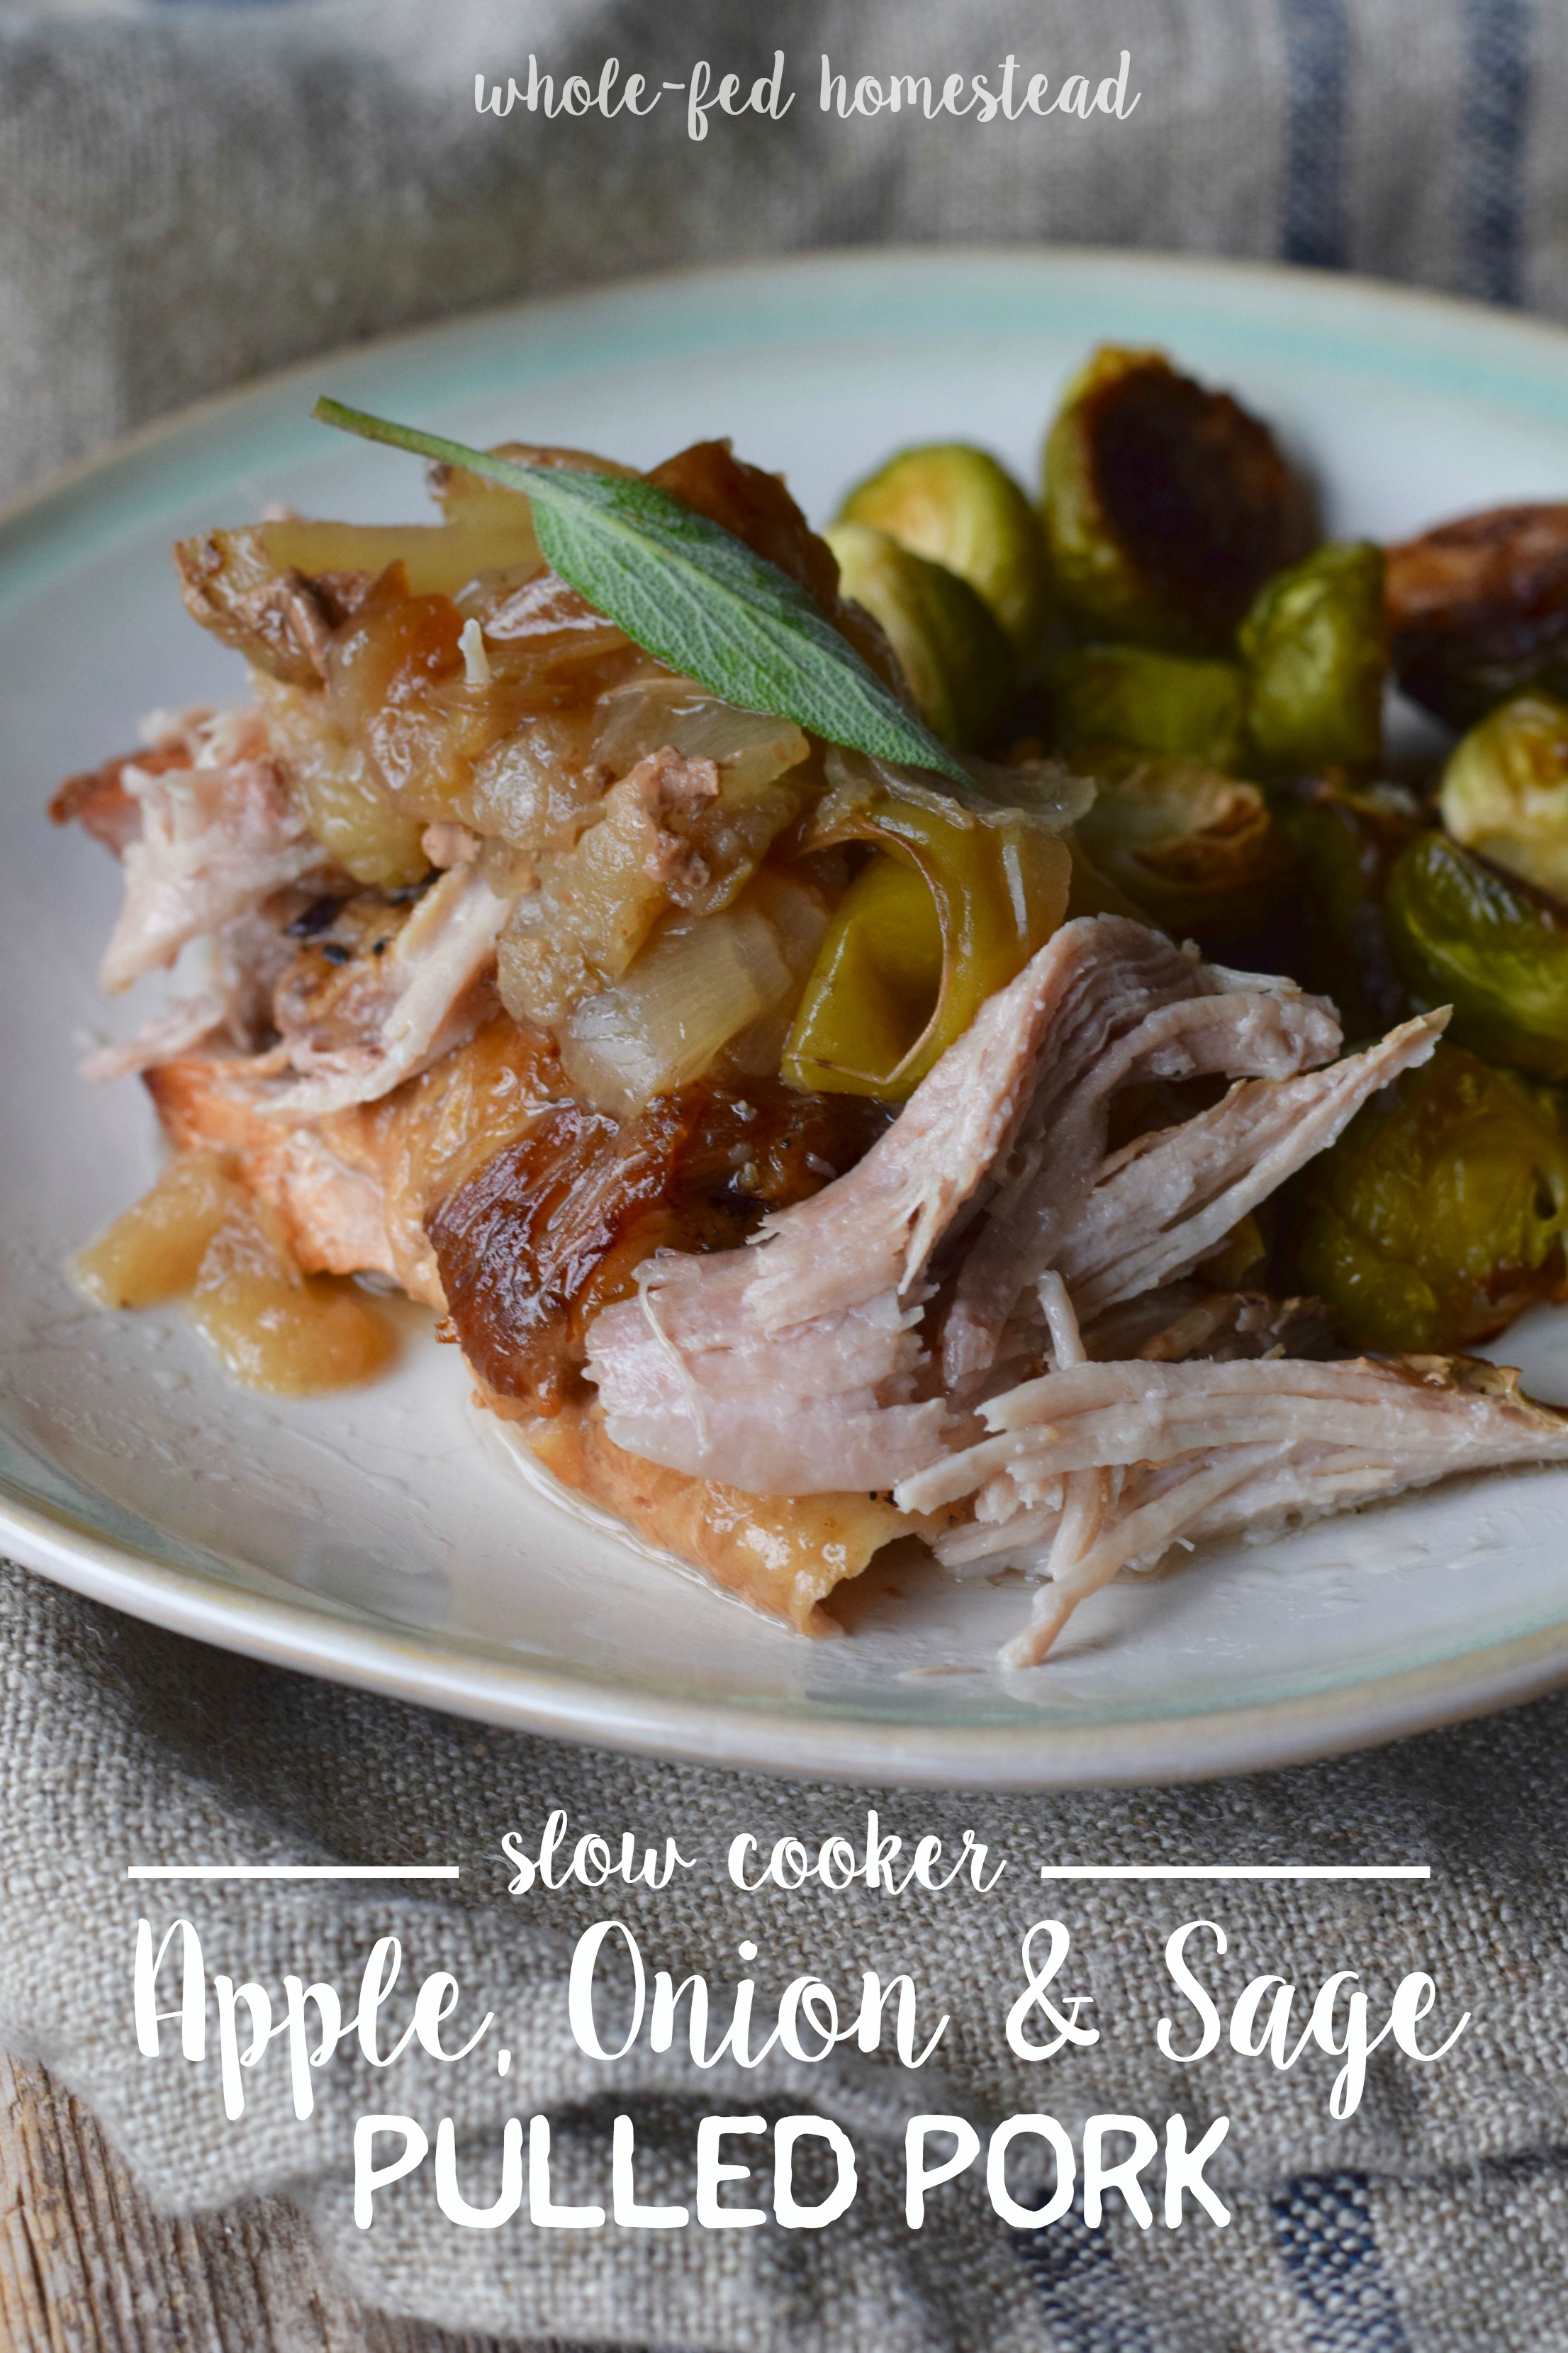 Apple, Onion & Sage Pulled Pork {slow cooker recipe} | Whole-Fed Homestead